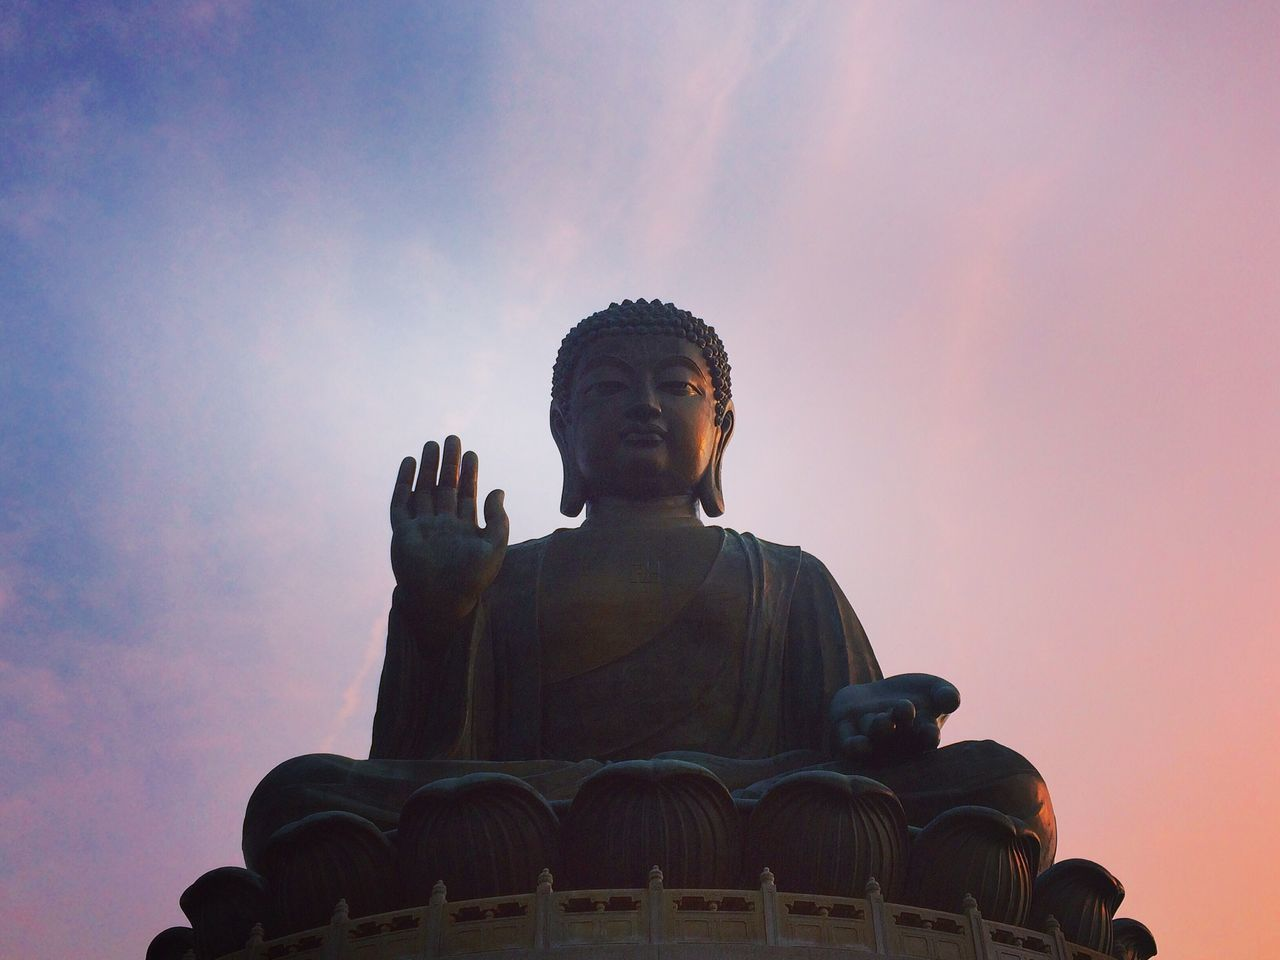 statue, sculpture, religion, spirituality, human representation, male likeness, low angle view, place of worship, idol, sunset, sky, travel destinations, outdoors, no people, day